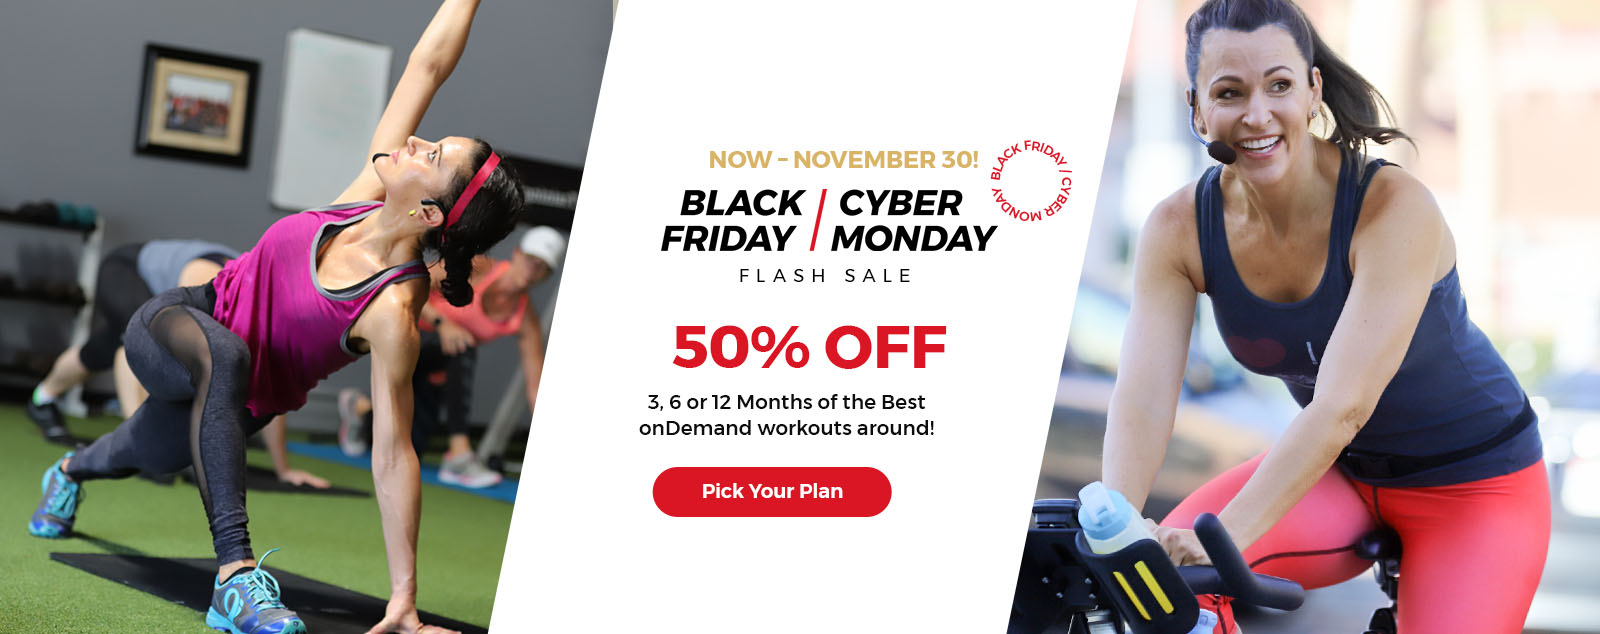 Shop Our BLACK FRIDAY SALE SUPER SALE and Get Unlimited Access to Studio SWEAT onDemand Indoor Cycling and Training workouts from home!